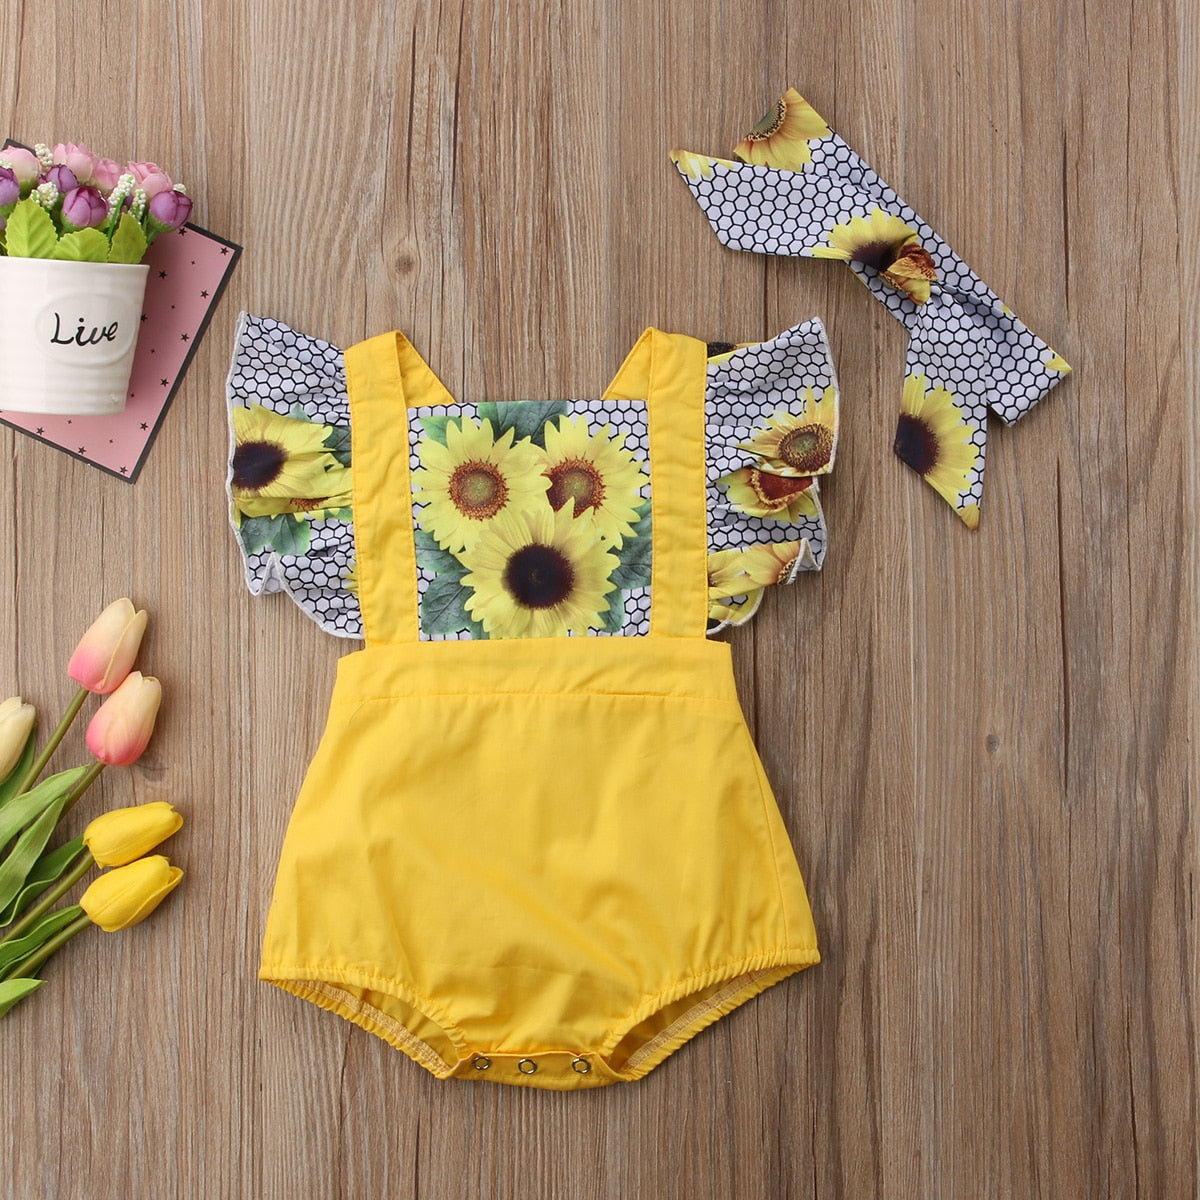 132450d5c ... Load image into Gallery viewer, Baby Girl Patchwork Sunflower Ruffle  Romper + Headband